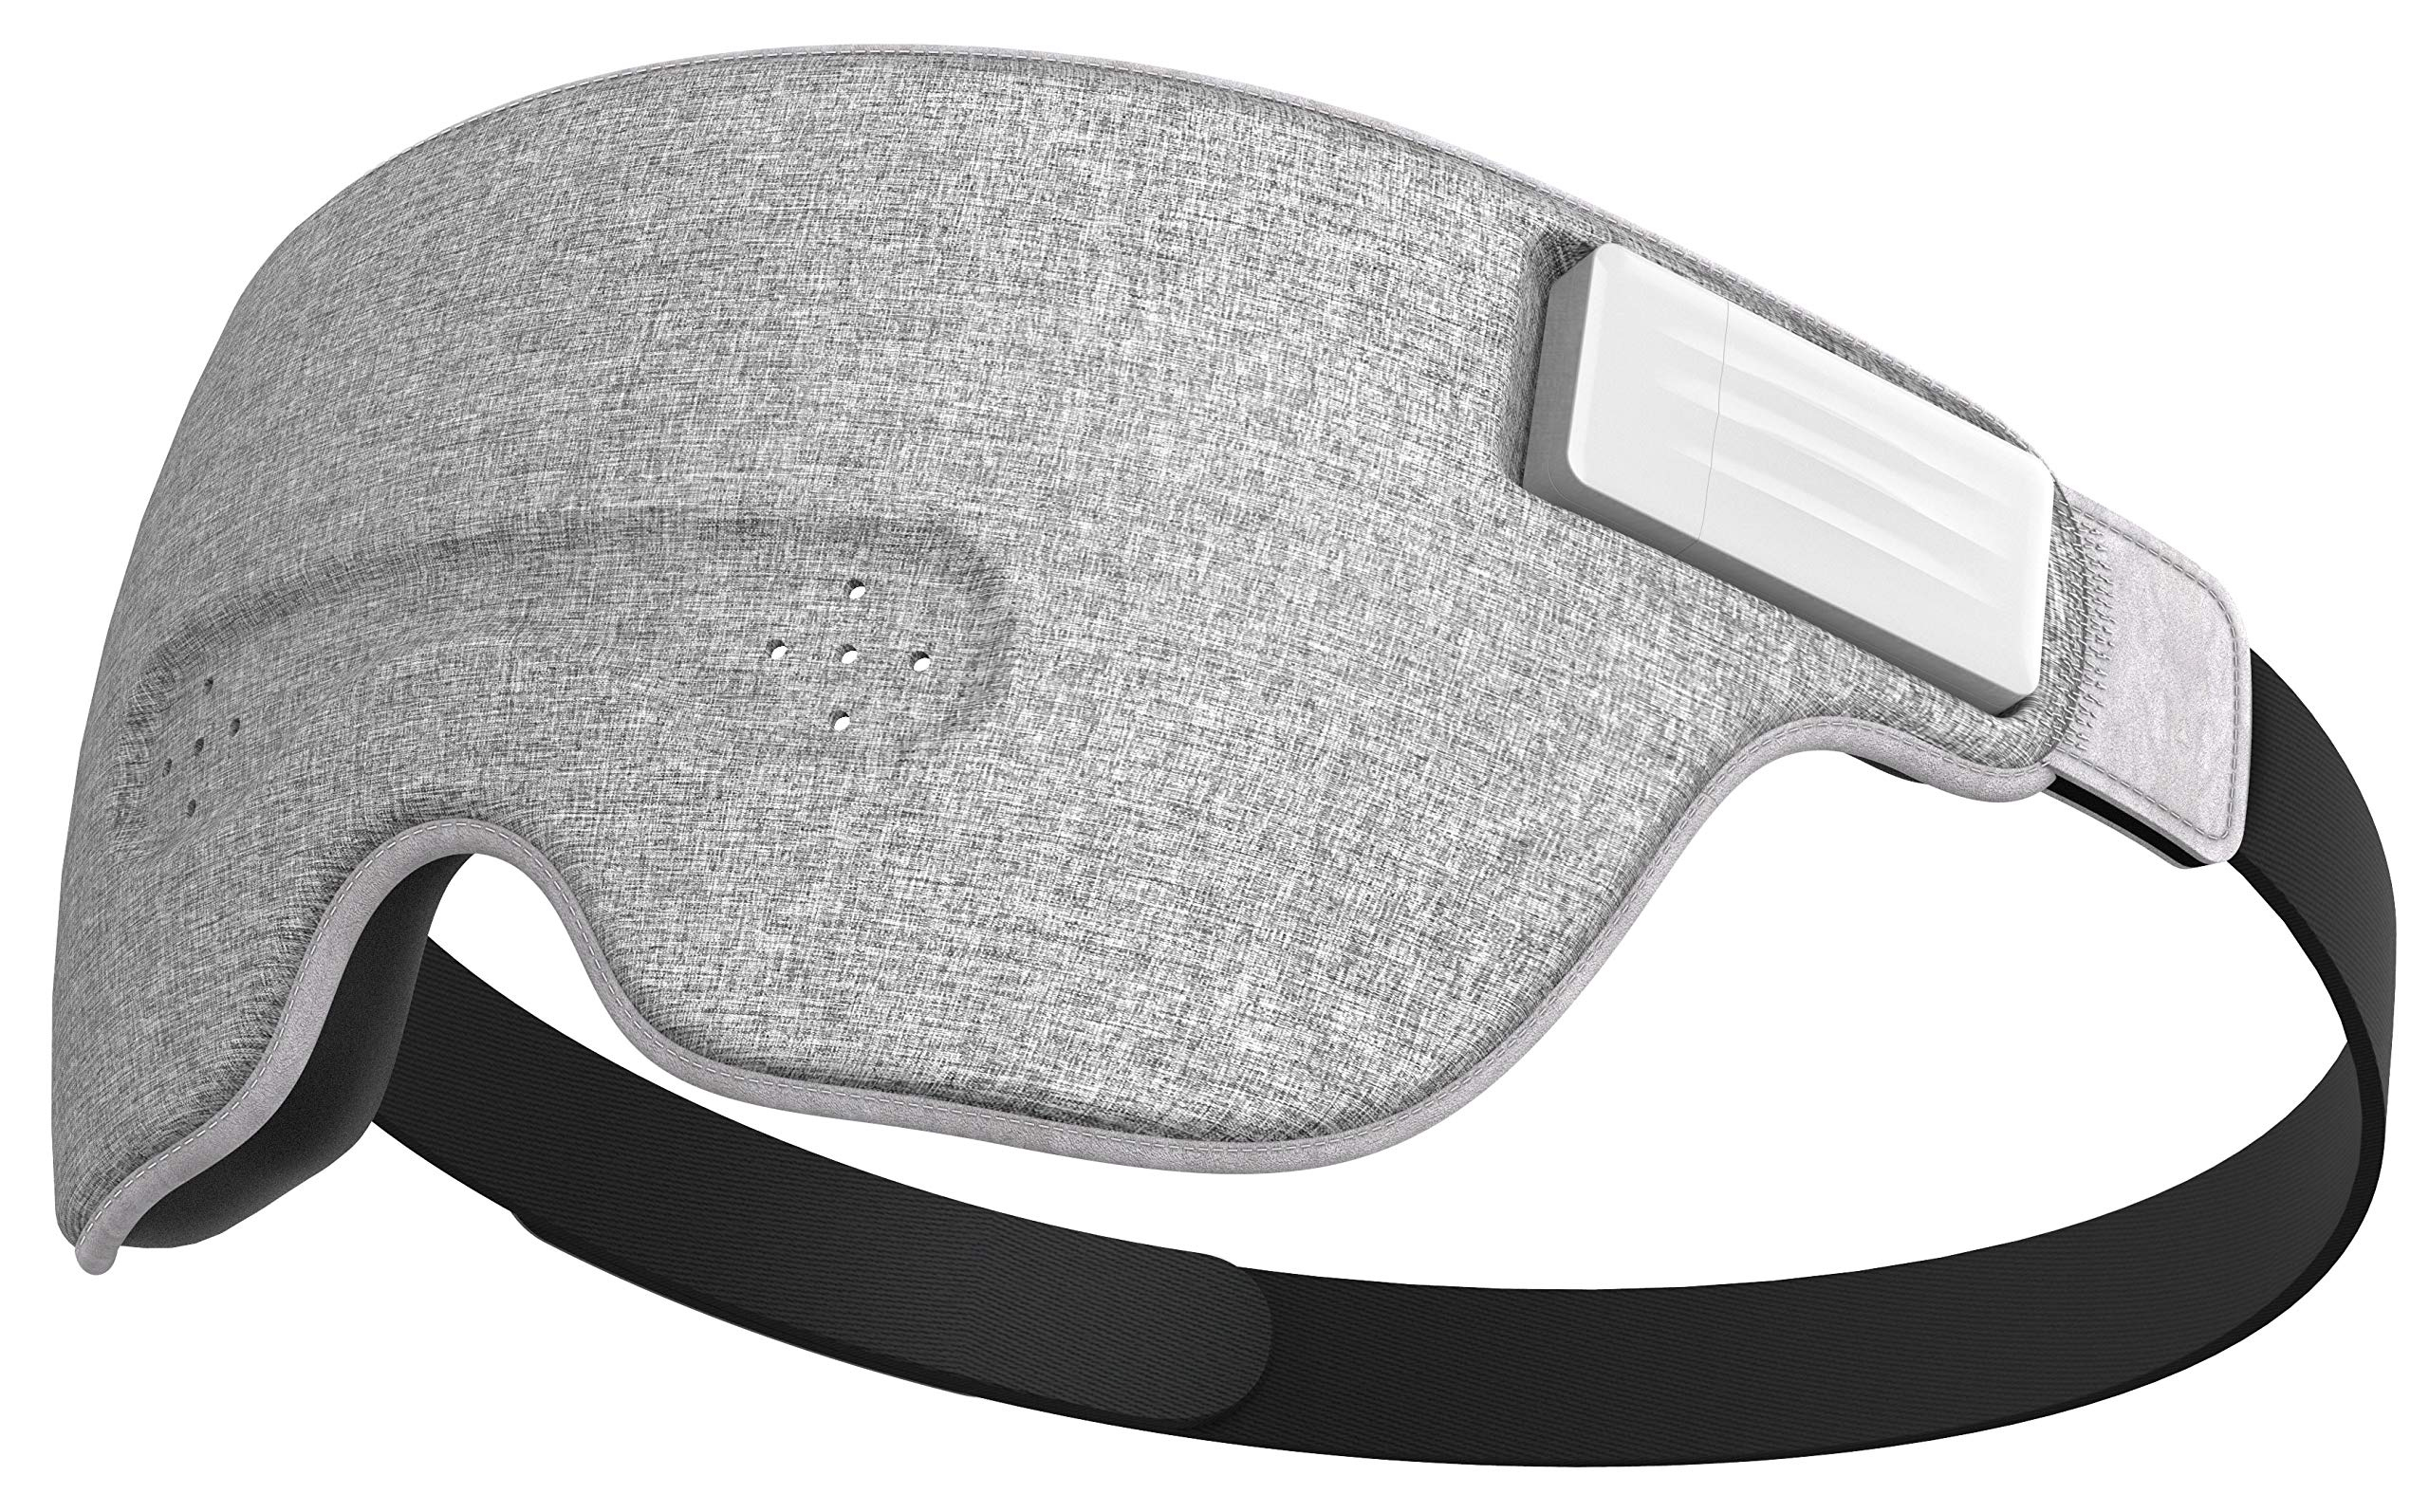 Ivation Luuna Brainwave Brain Sensing Bluetooth Smart Sleep Mask Built-in  Music/Sounds, Wireless Connection to Most Devices with EEG and AI  Technology